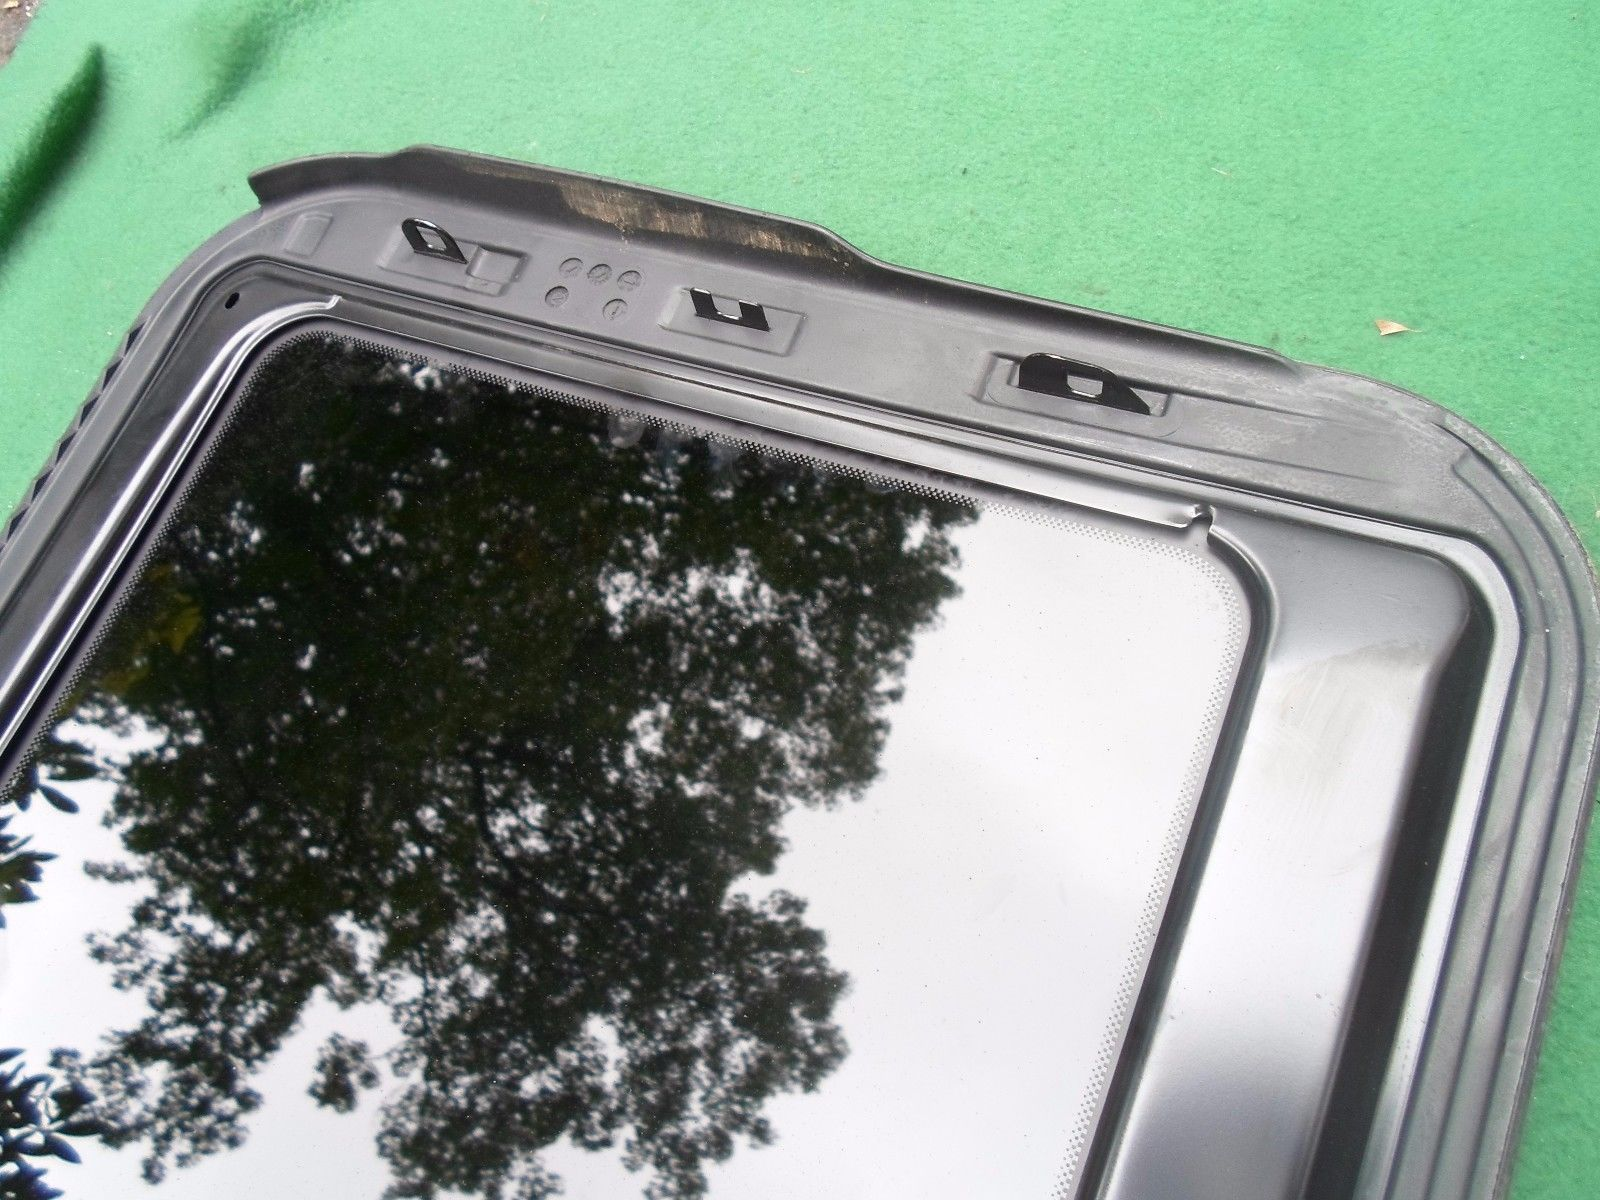 2008 AUDI S4 OEM FACTORY YEAR SPECIFIC SUNROOF GLASS PANEL  FREE SHIPPING!